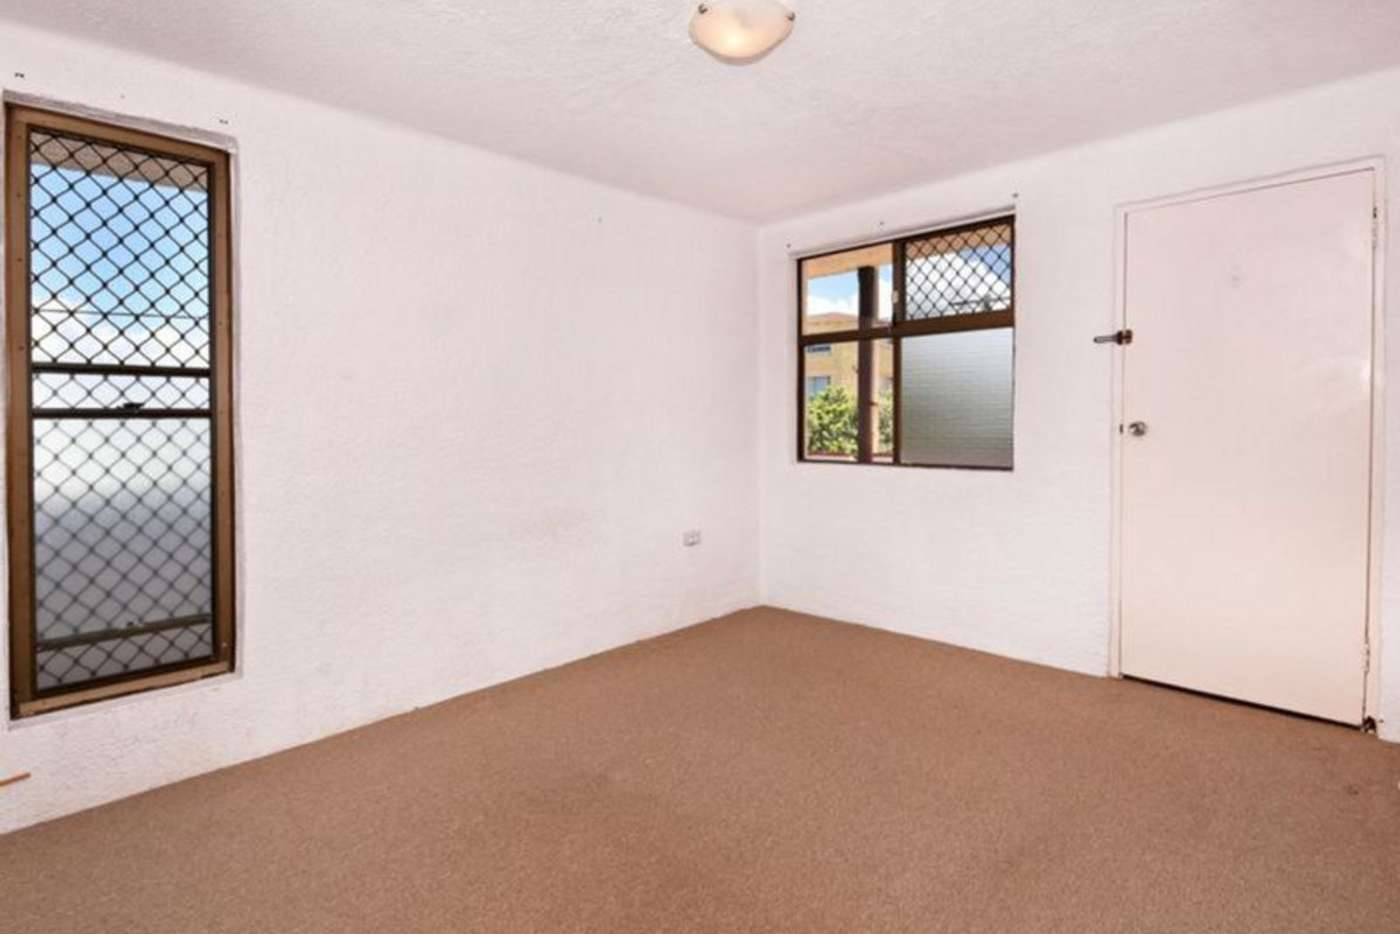 Seventh view of Homely unit listing, 1/3 Sykes Avenue, Kings Beach QLD 4551